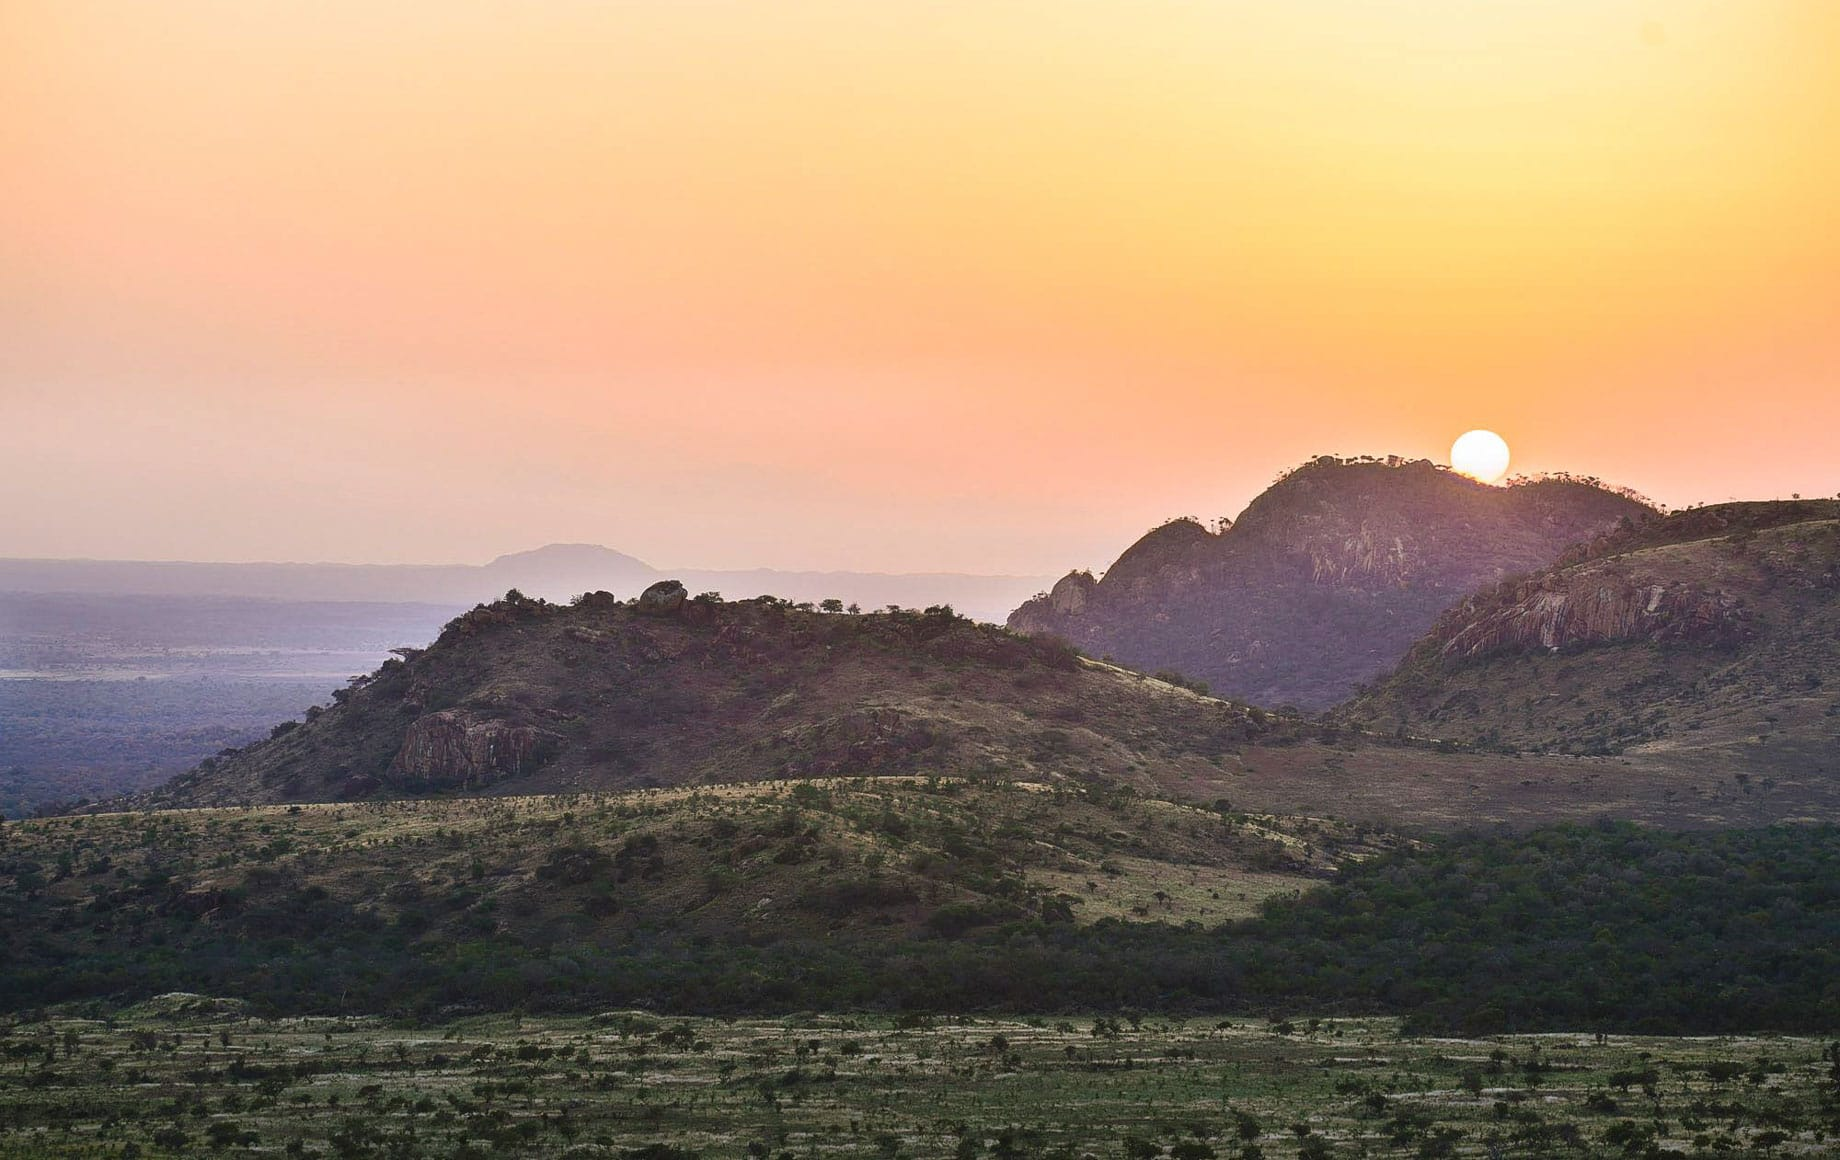 Colorful sky and calm afternoon at the Chyulu Hills in Africa